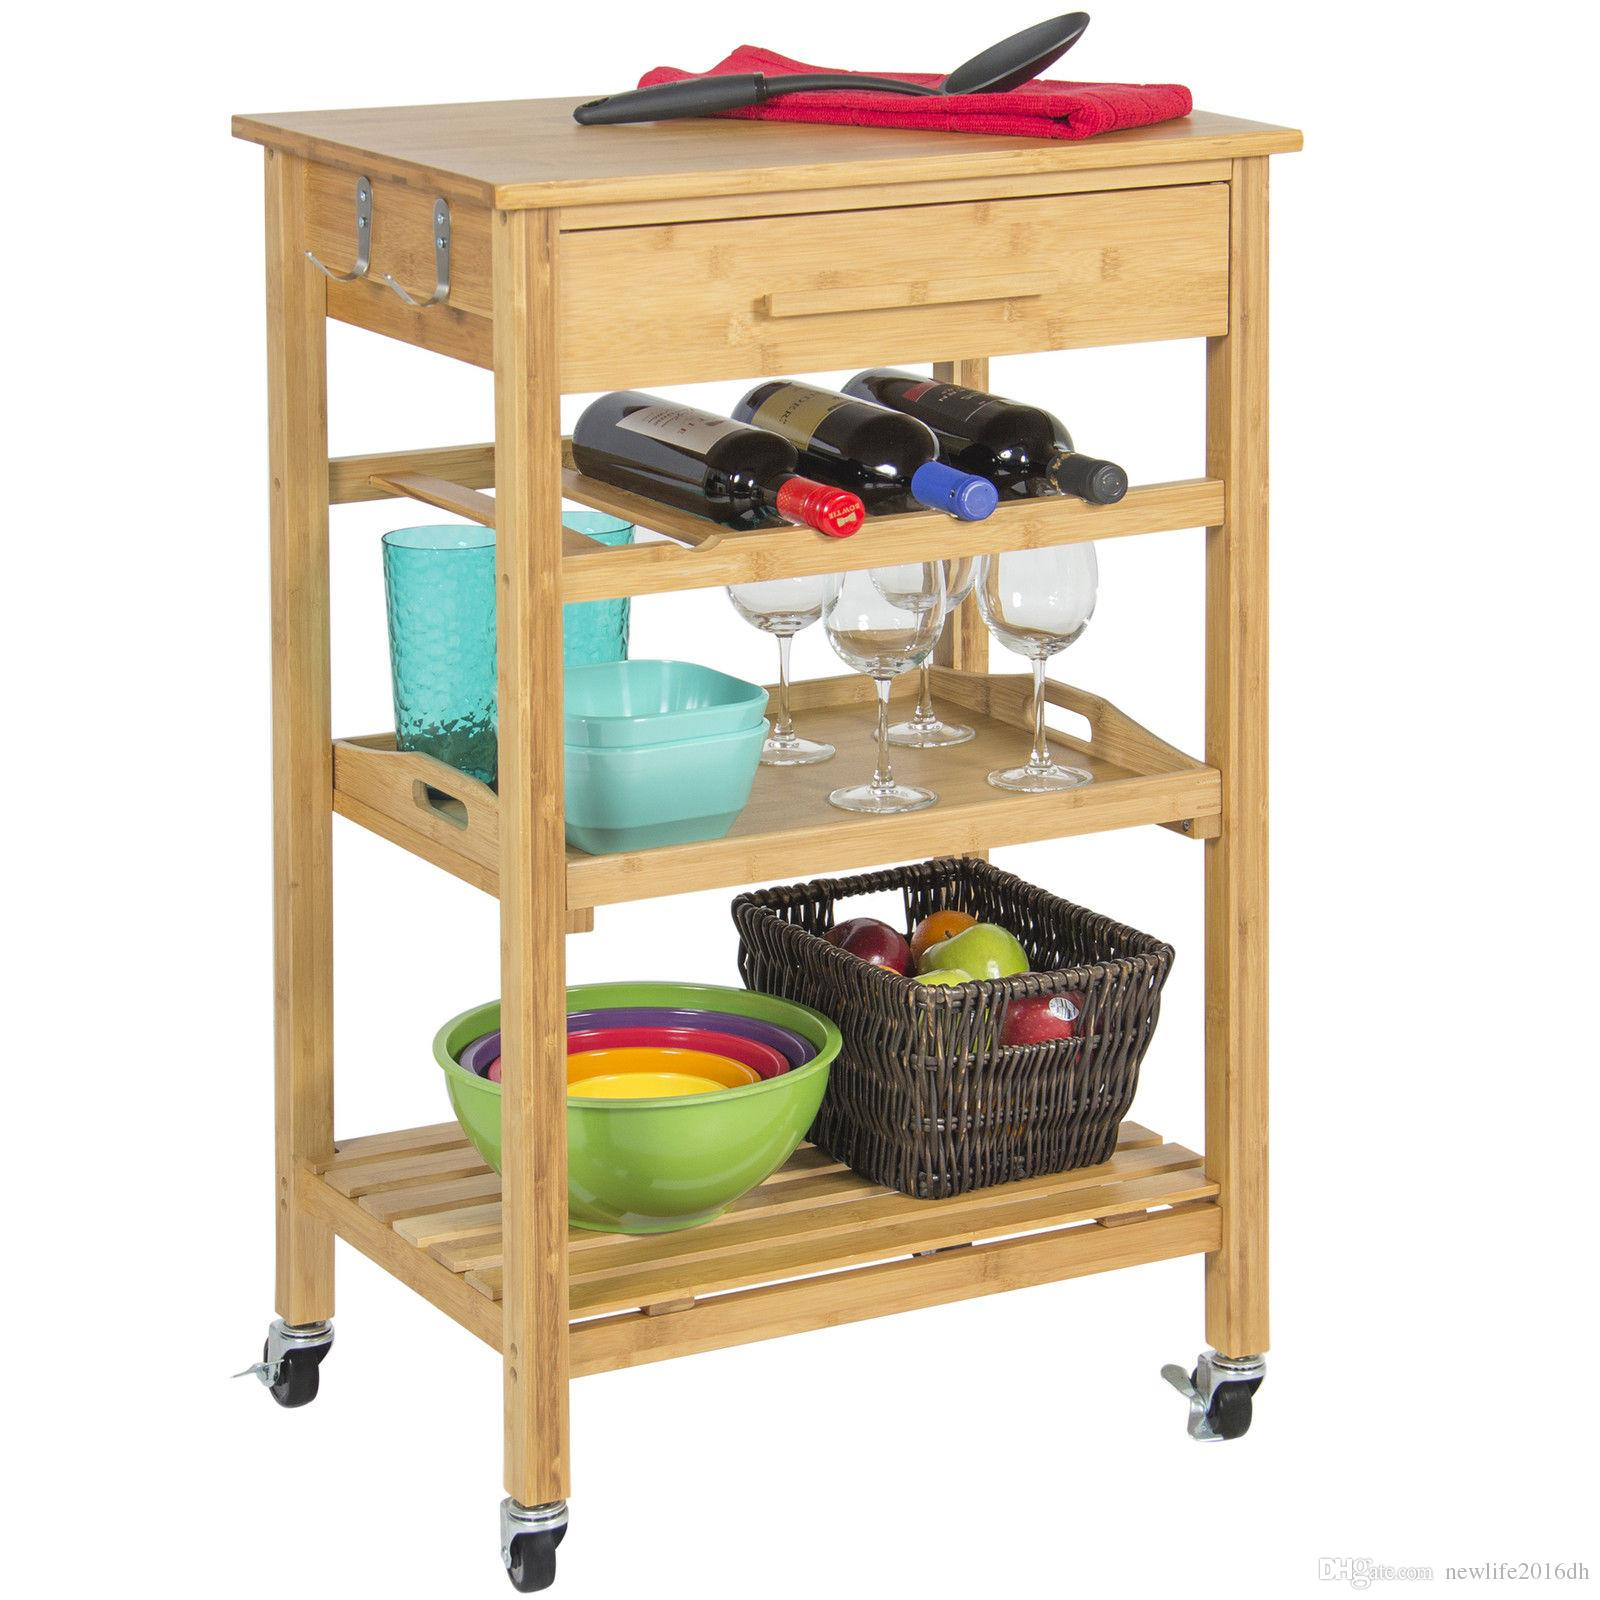 2018 rolling wood kitchen storage cart rack with drawer shelves home furniture from newlife2016dh 90 46 dhgate com